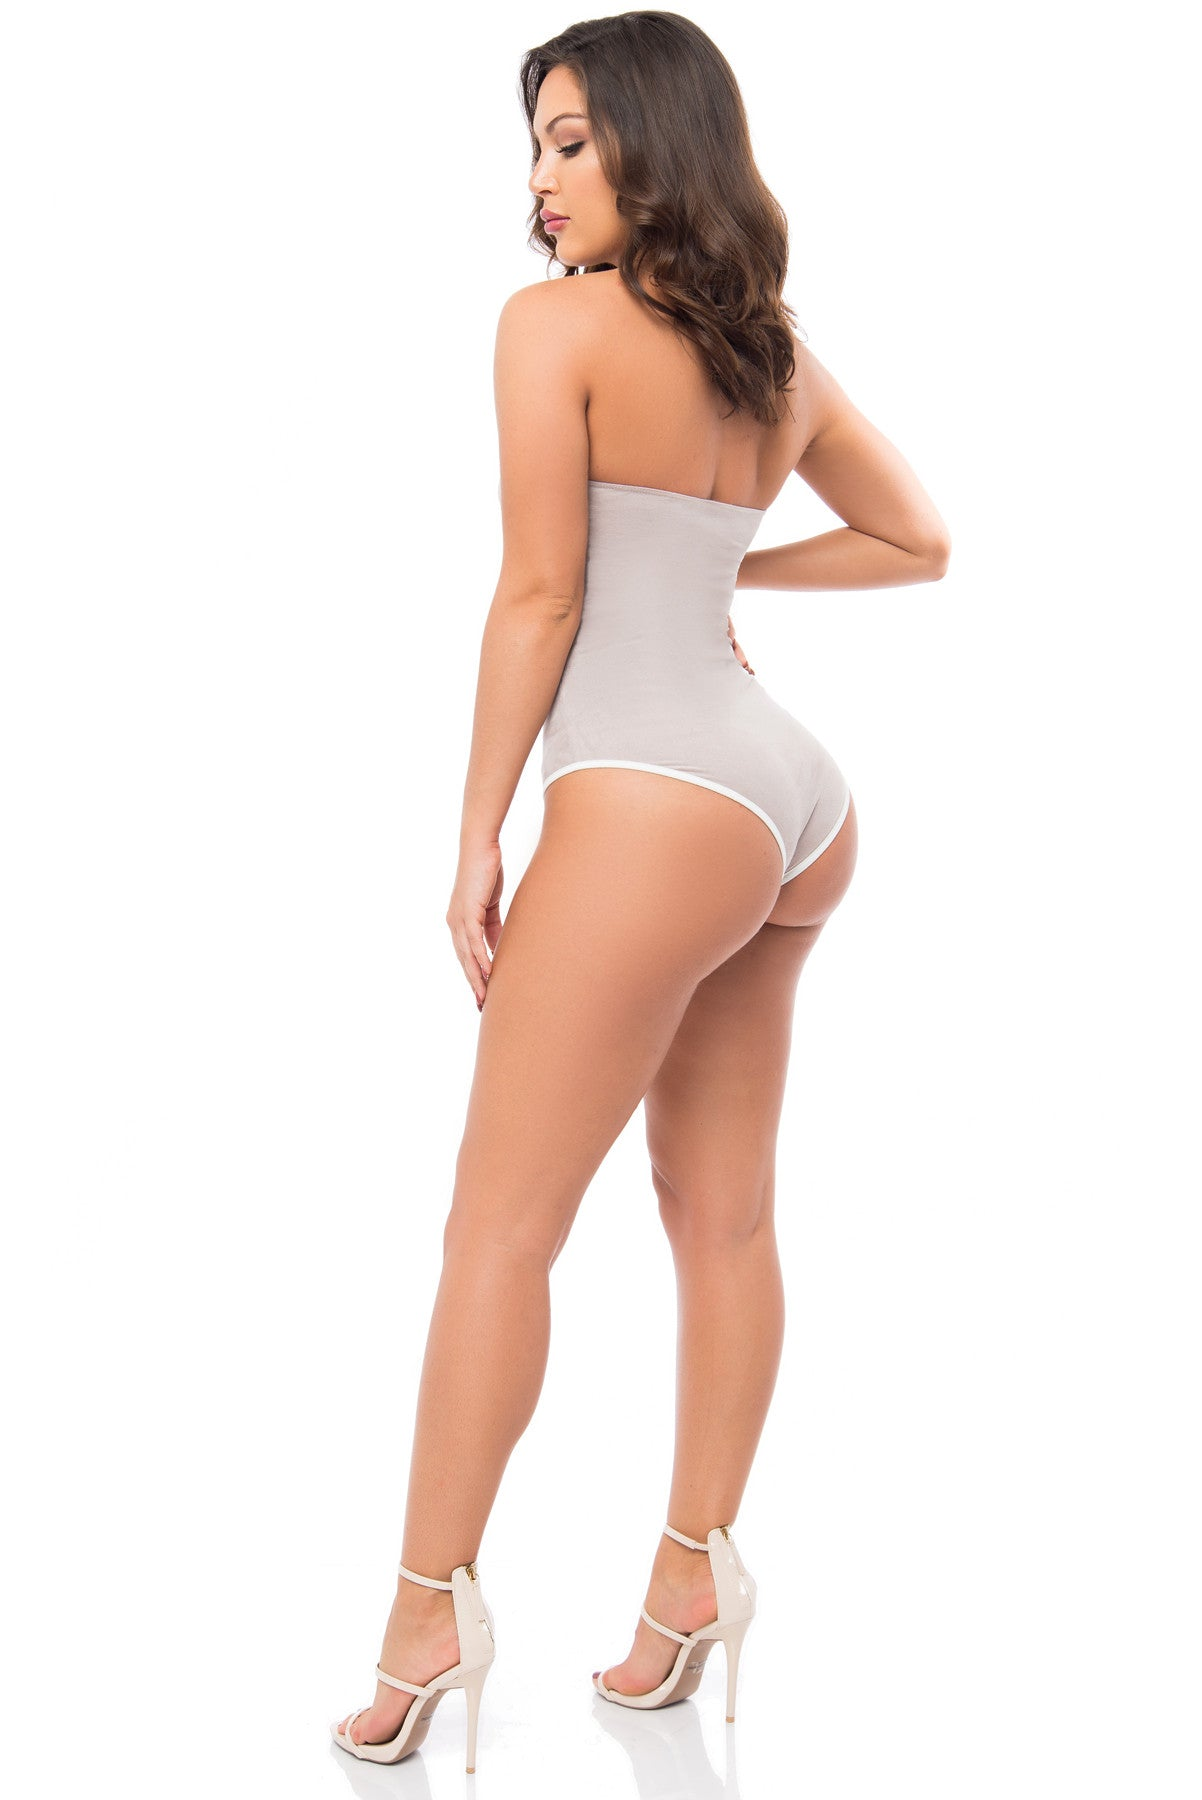 Danny Suede Gray Bodysuit - Fashion Effect Store  - 3